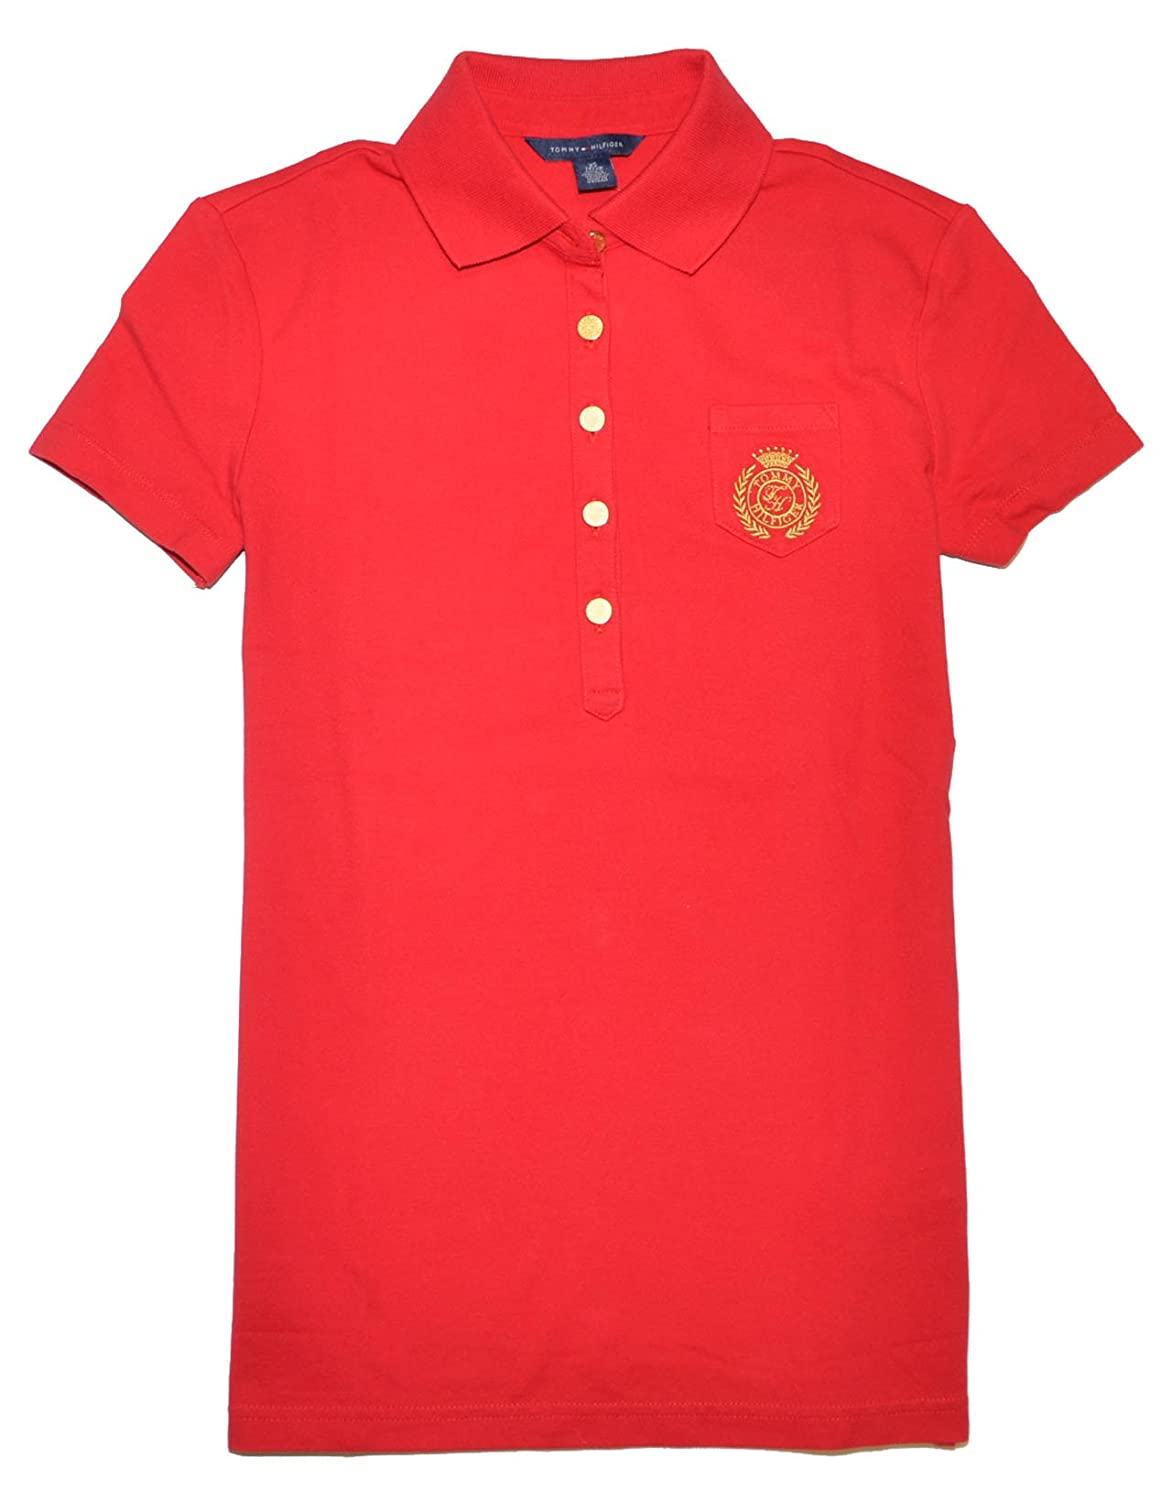 Tommy hilfiger t shirts tommy hilfiger women crown red for Amazon logo polo shirts